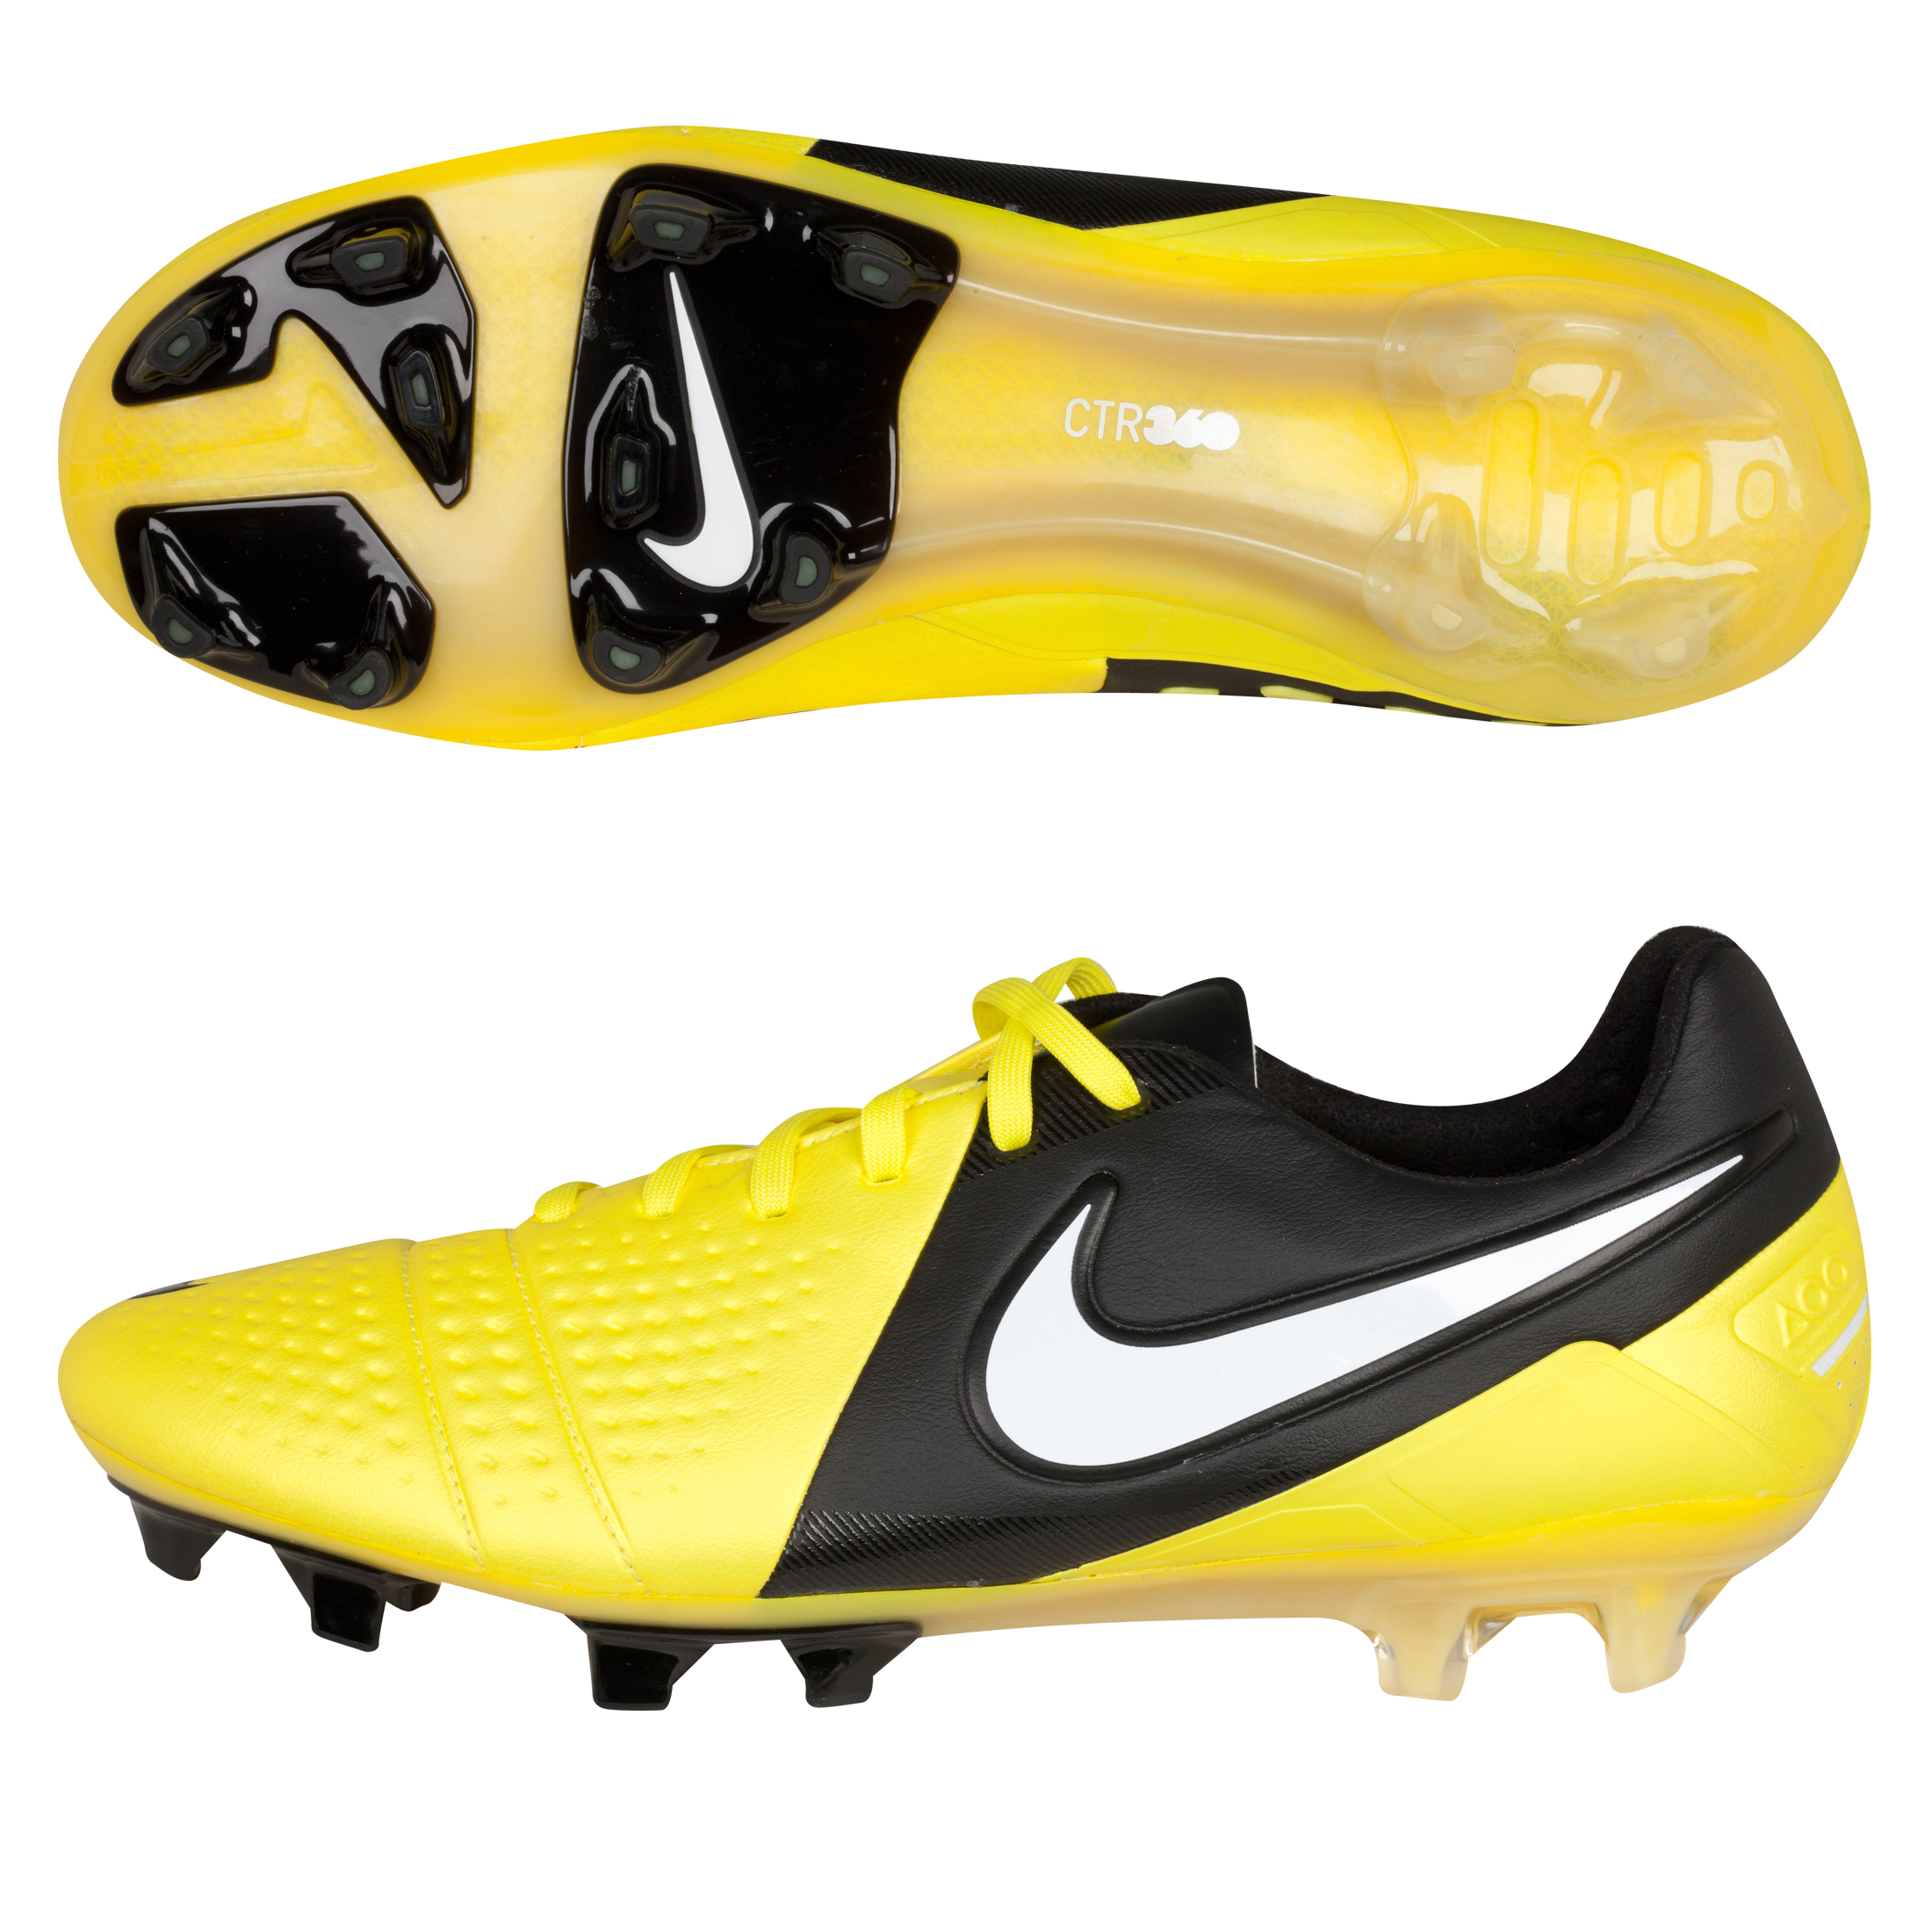 Nike CTR360 Maestri III Firm Ground Football Boots - Sonic Yellow/White/Black